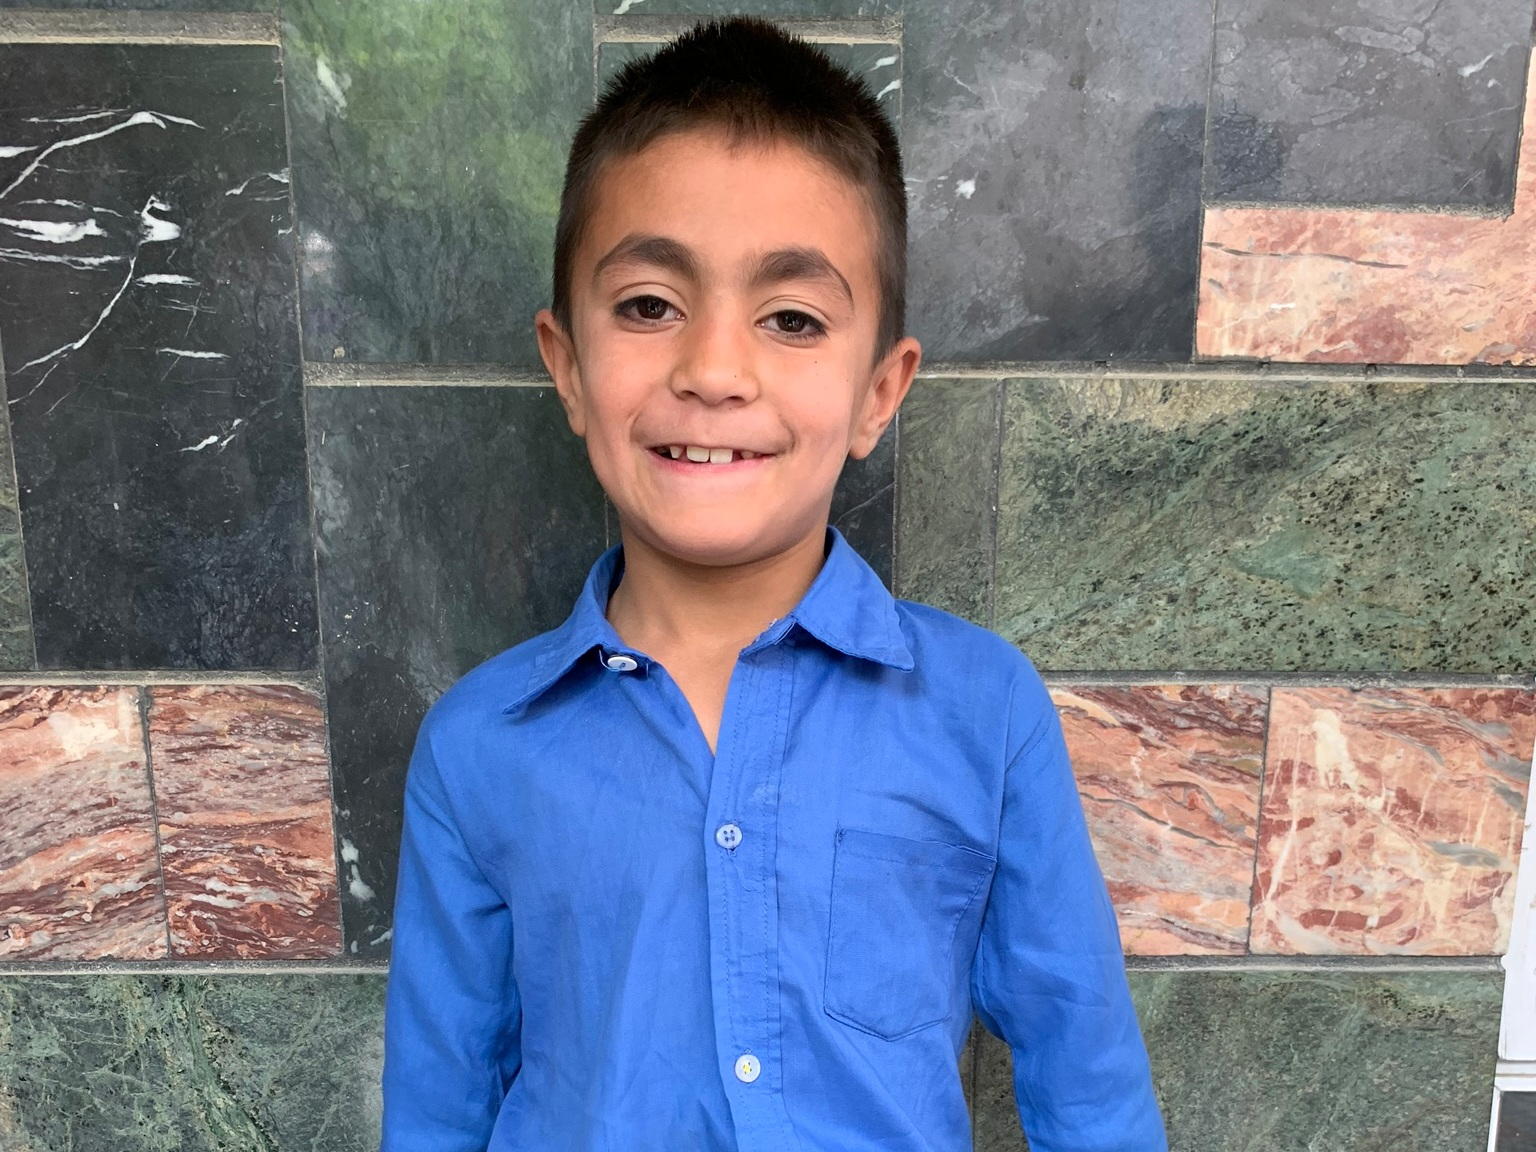 Ahmad Melot, Age 8 - Ahmad Melot has 3 siblings. His mother is unemployed and his father sells vegetables.BE AHMAD MELOT'S PARTNER>